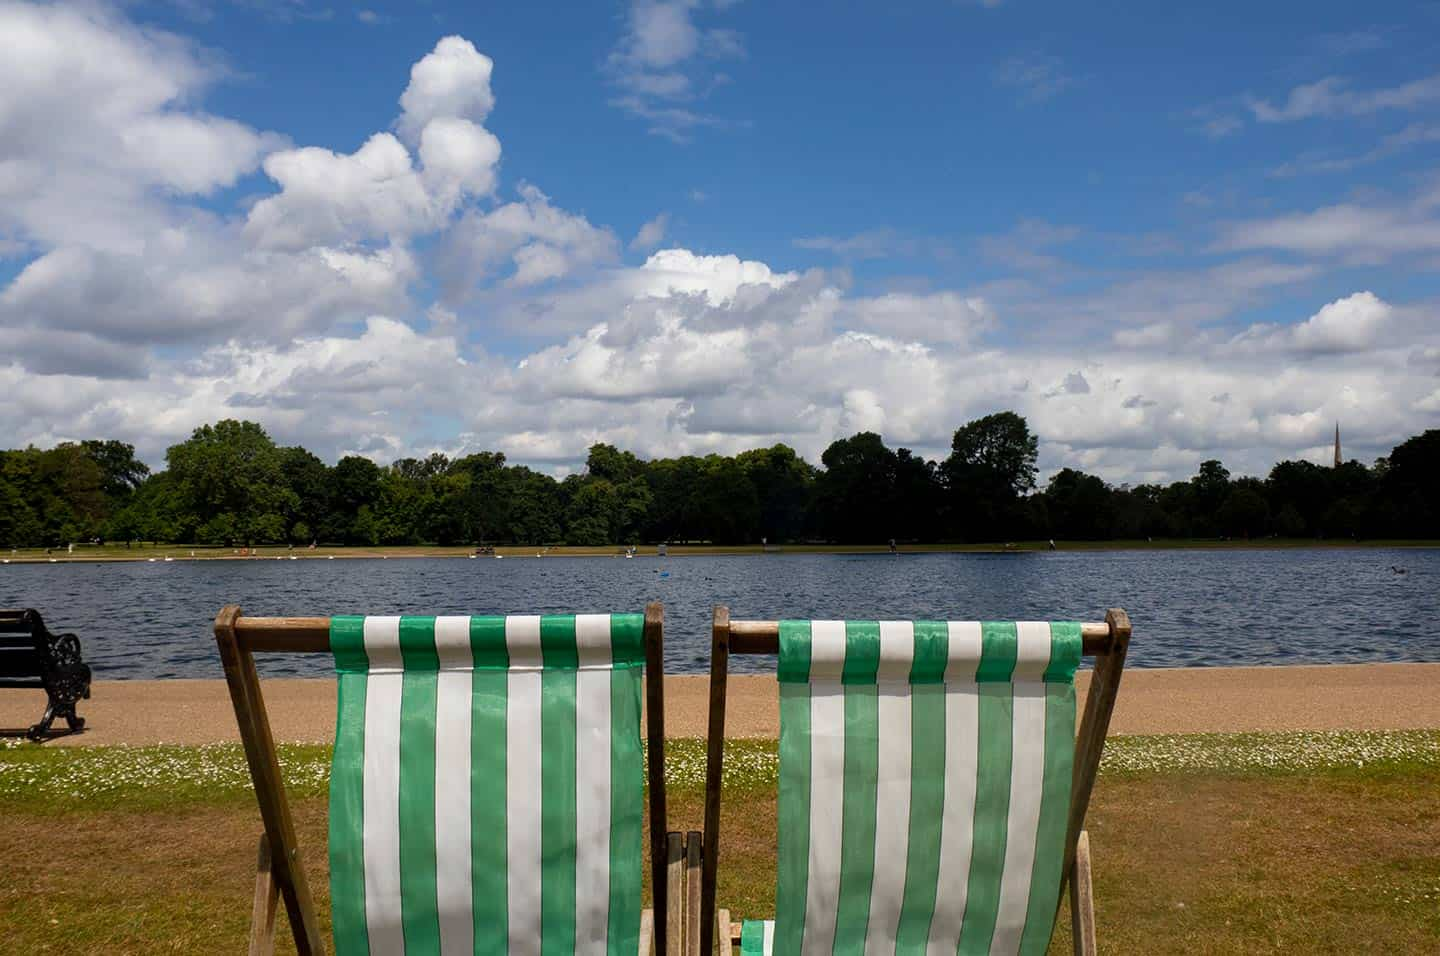 Image of two deckchairs in Kensington Gardens, London